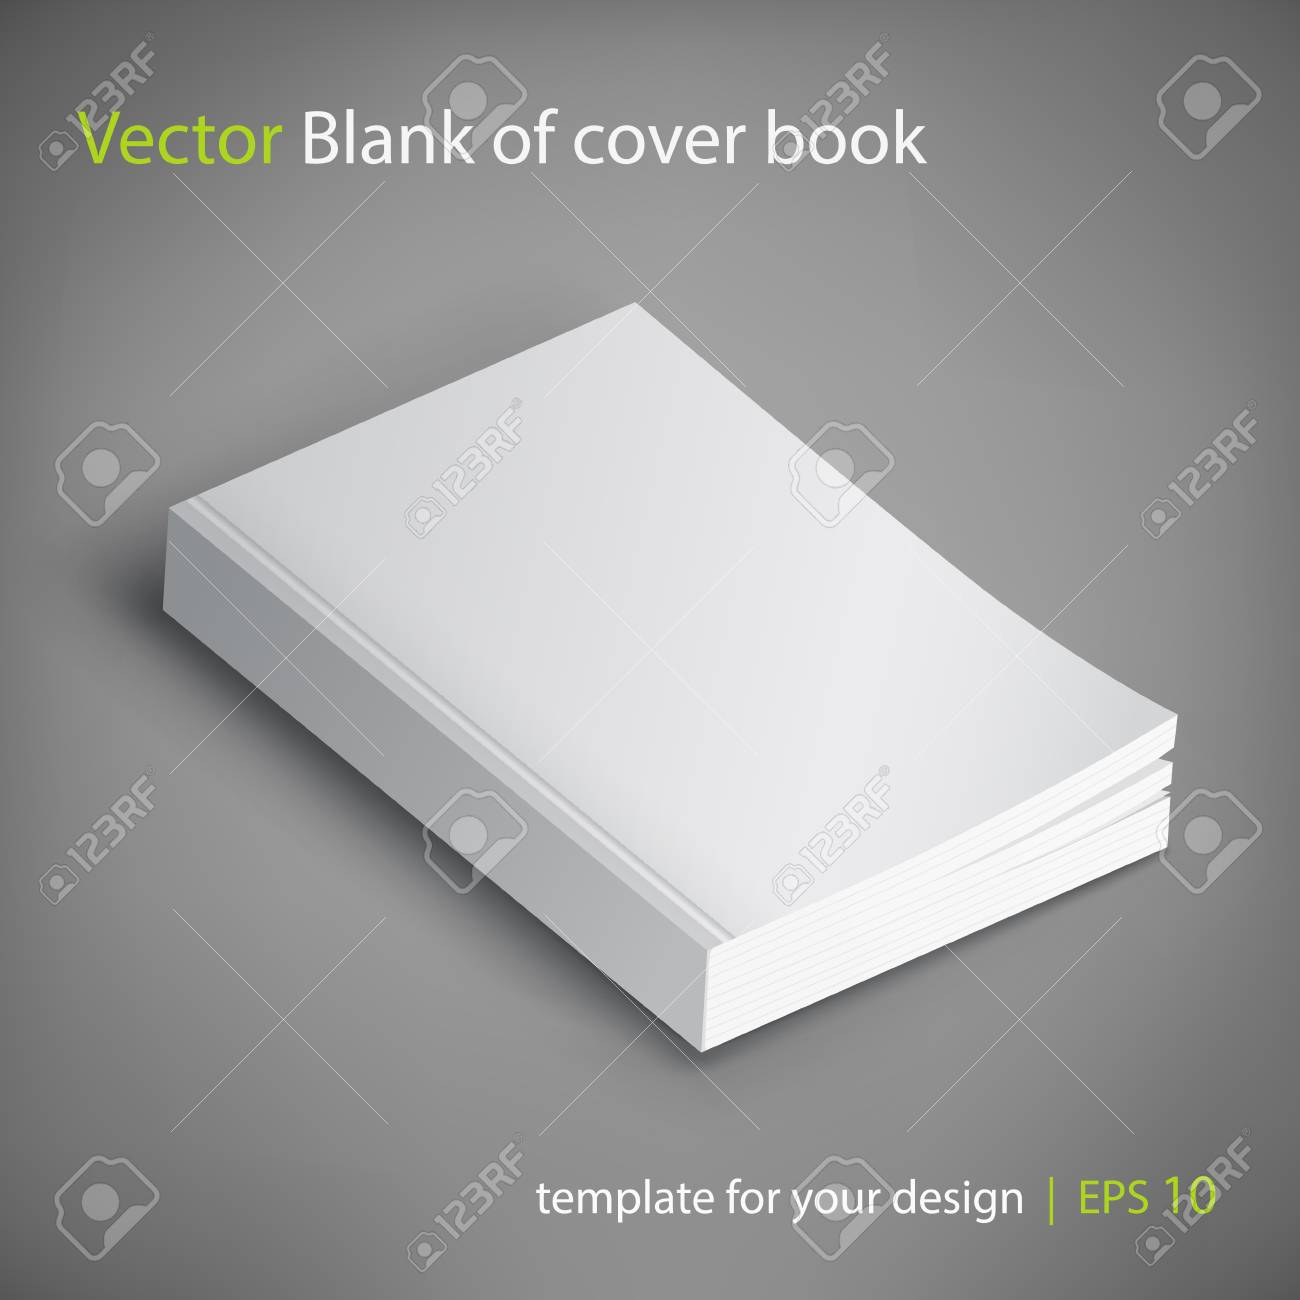 Realistic vector blank of paperback cover book. Template for your design. Grayscale Mockup. - 78710139